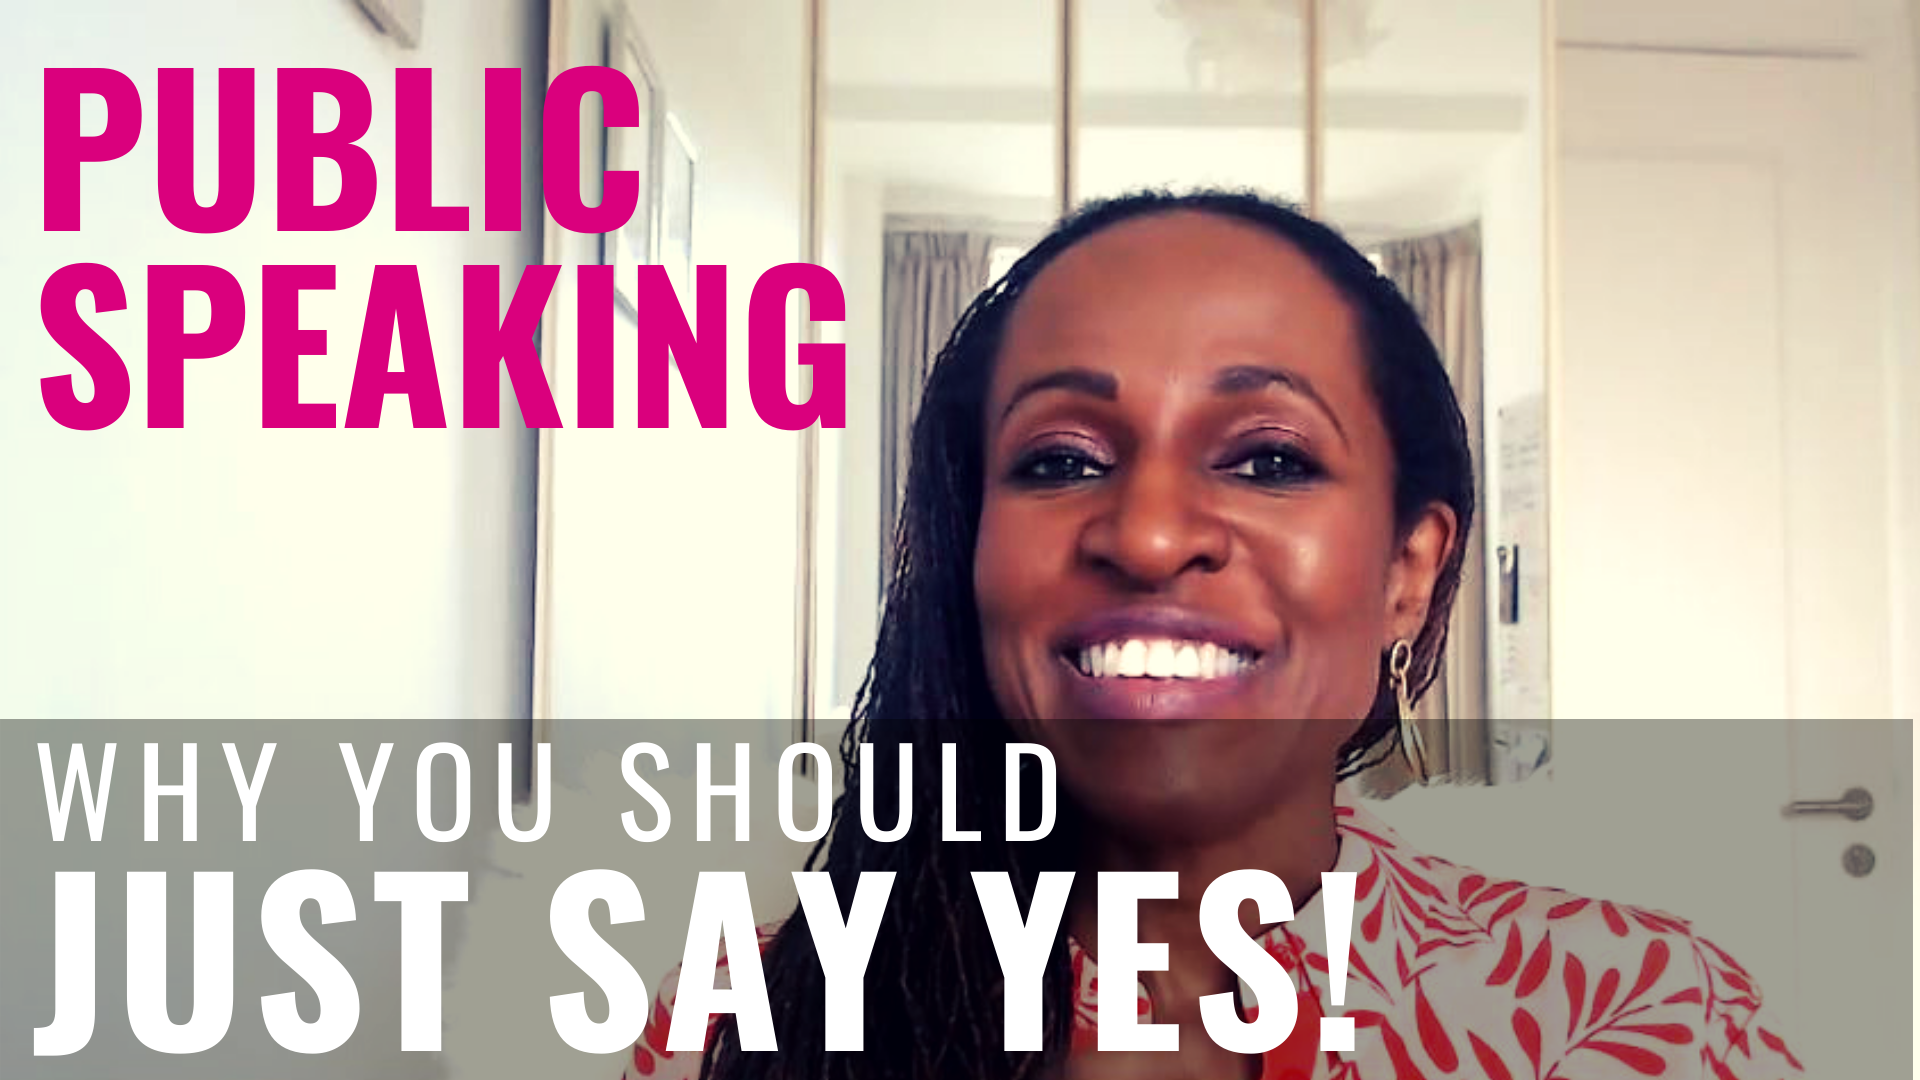 PUBLIC SPEAKING - Why you should JUST SAY YES!